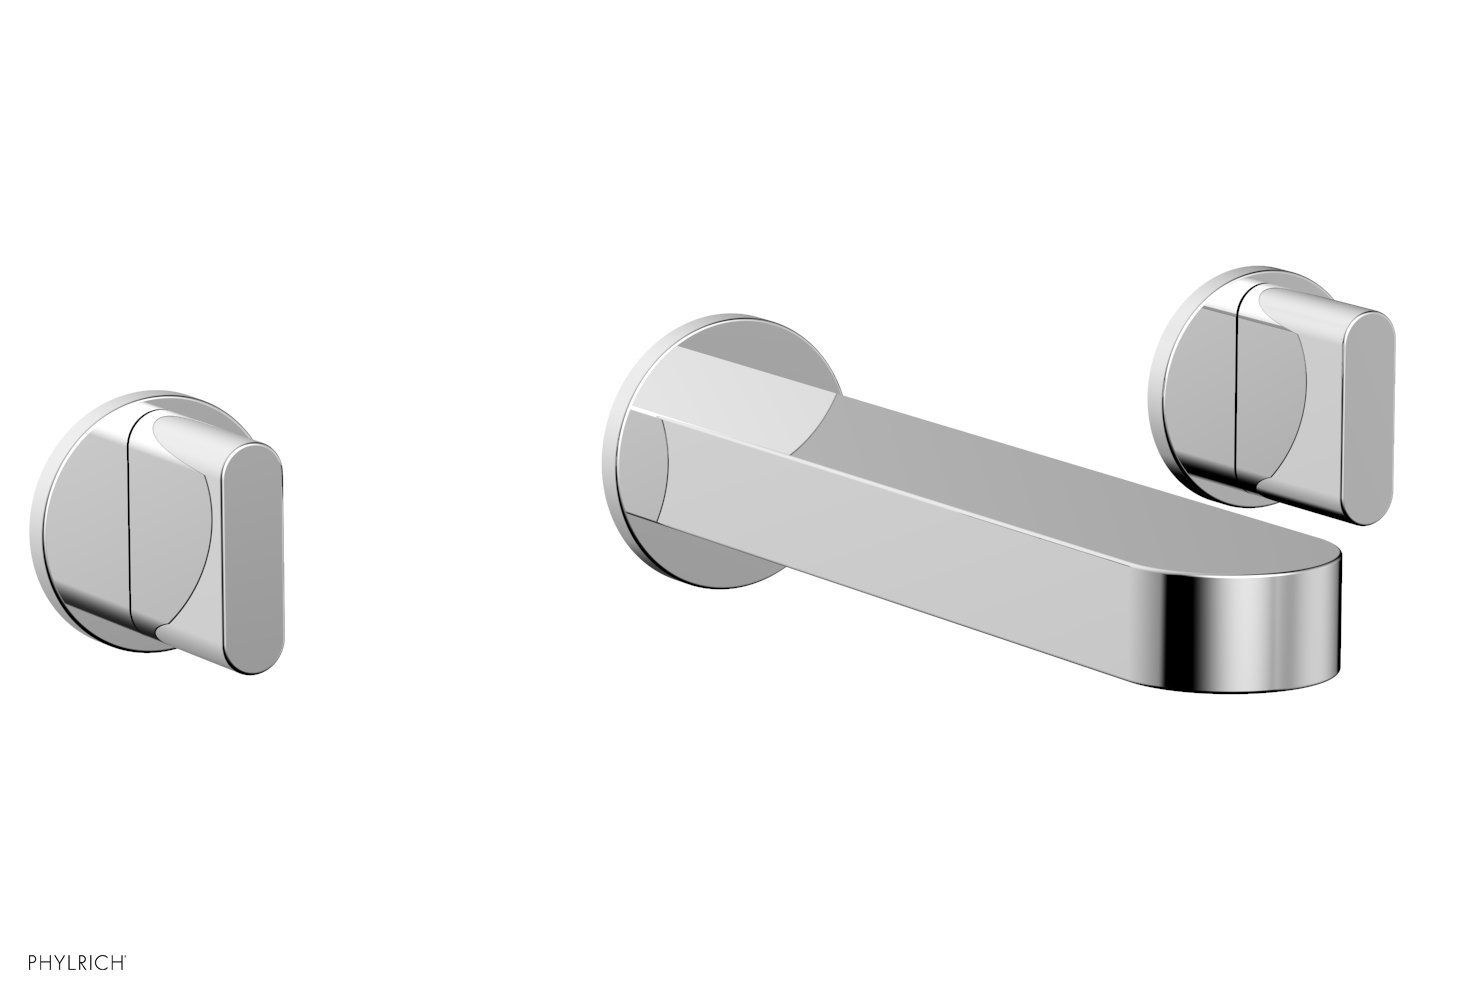 Phylrich 183-56-026 ROND Wall Tub Set - Blade Handles - Polished Chrome